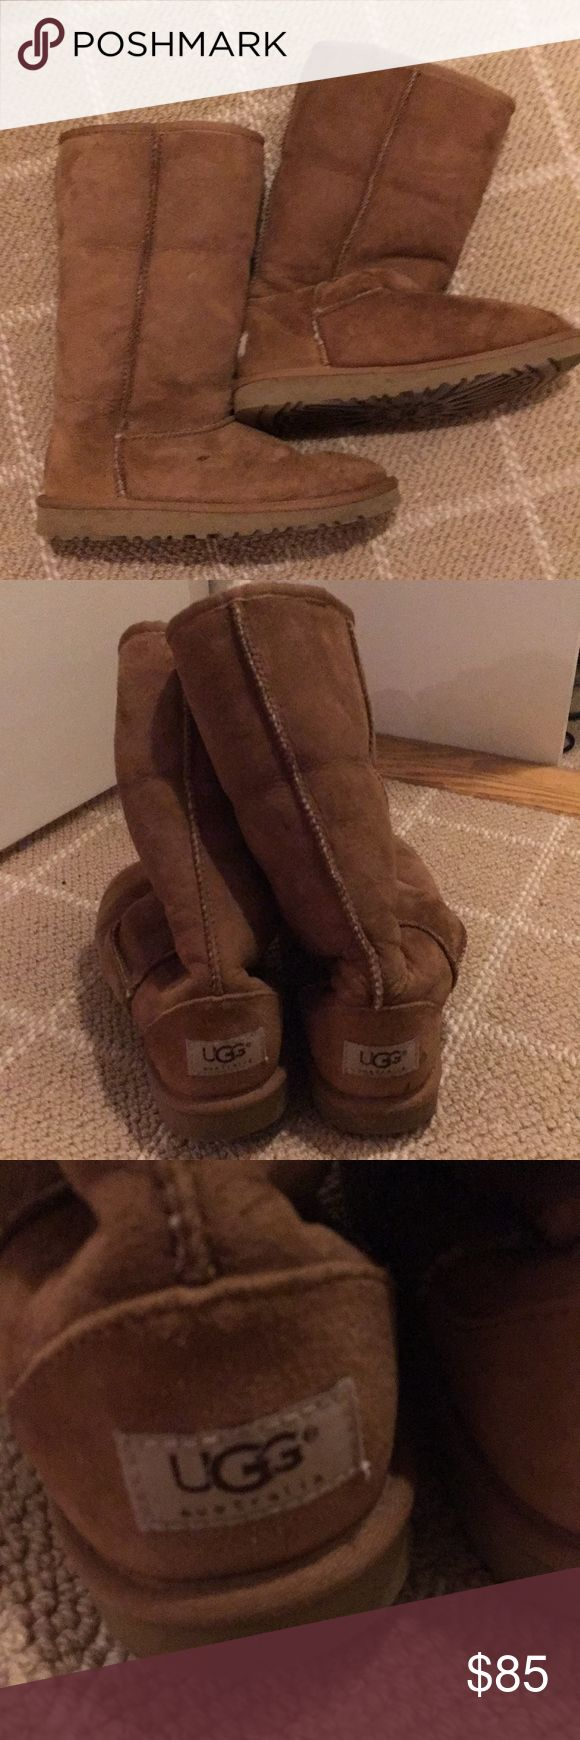 UGG Boots Original UGG brand tall boots in tan/natural color exterior and cream inside interior. Very good condition. Can be worn tall or rolled over for two looks. US size 4 kids (equivalent to women's size 6) UGG Shoes Winter & Rain Boots